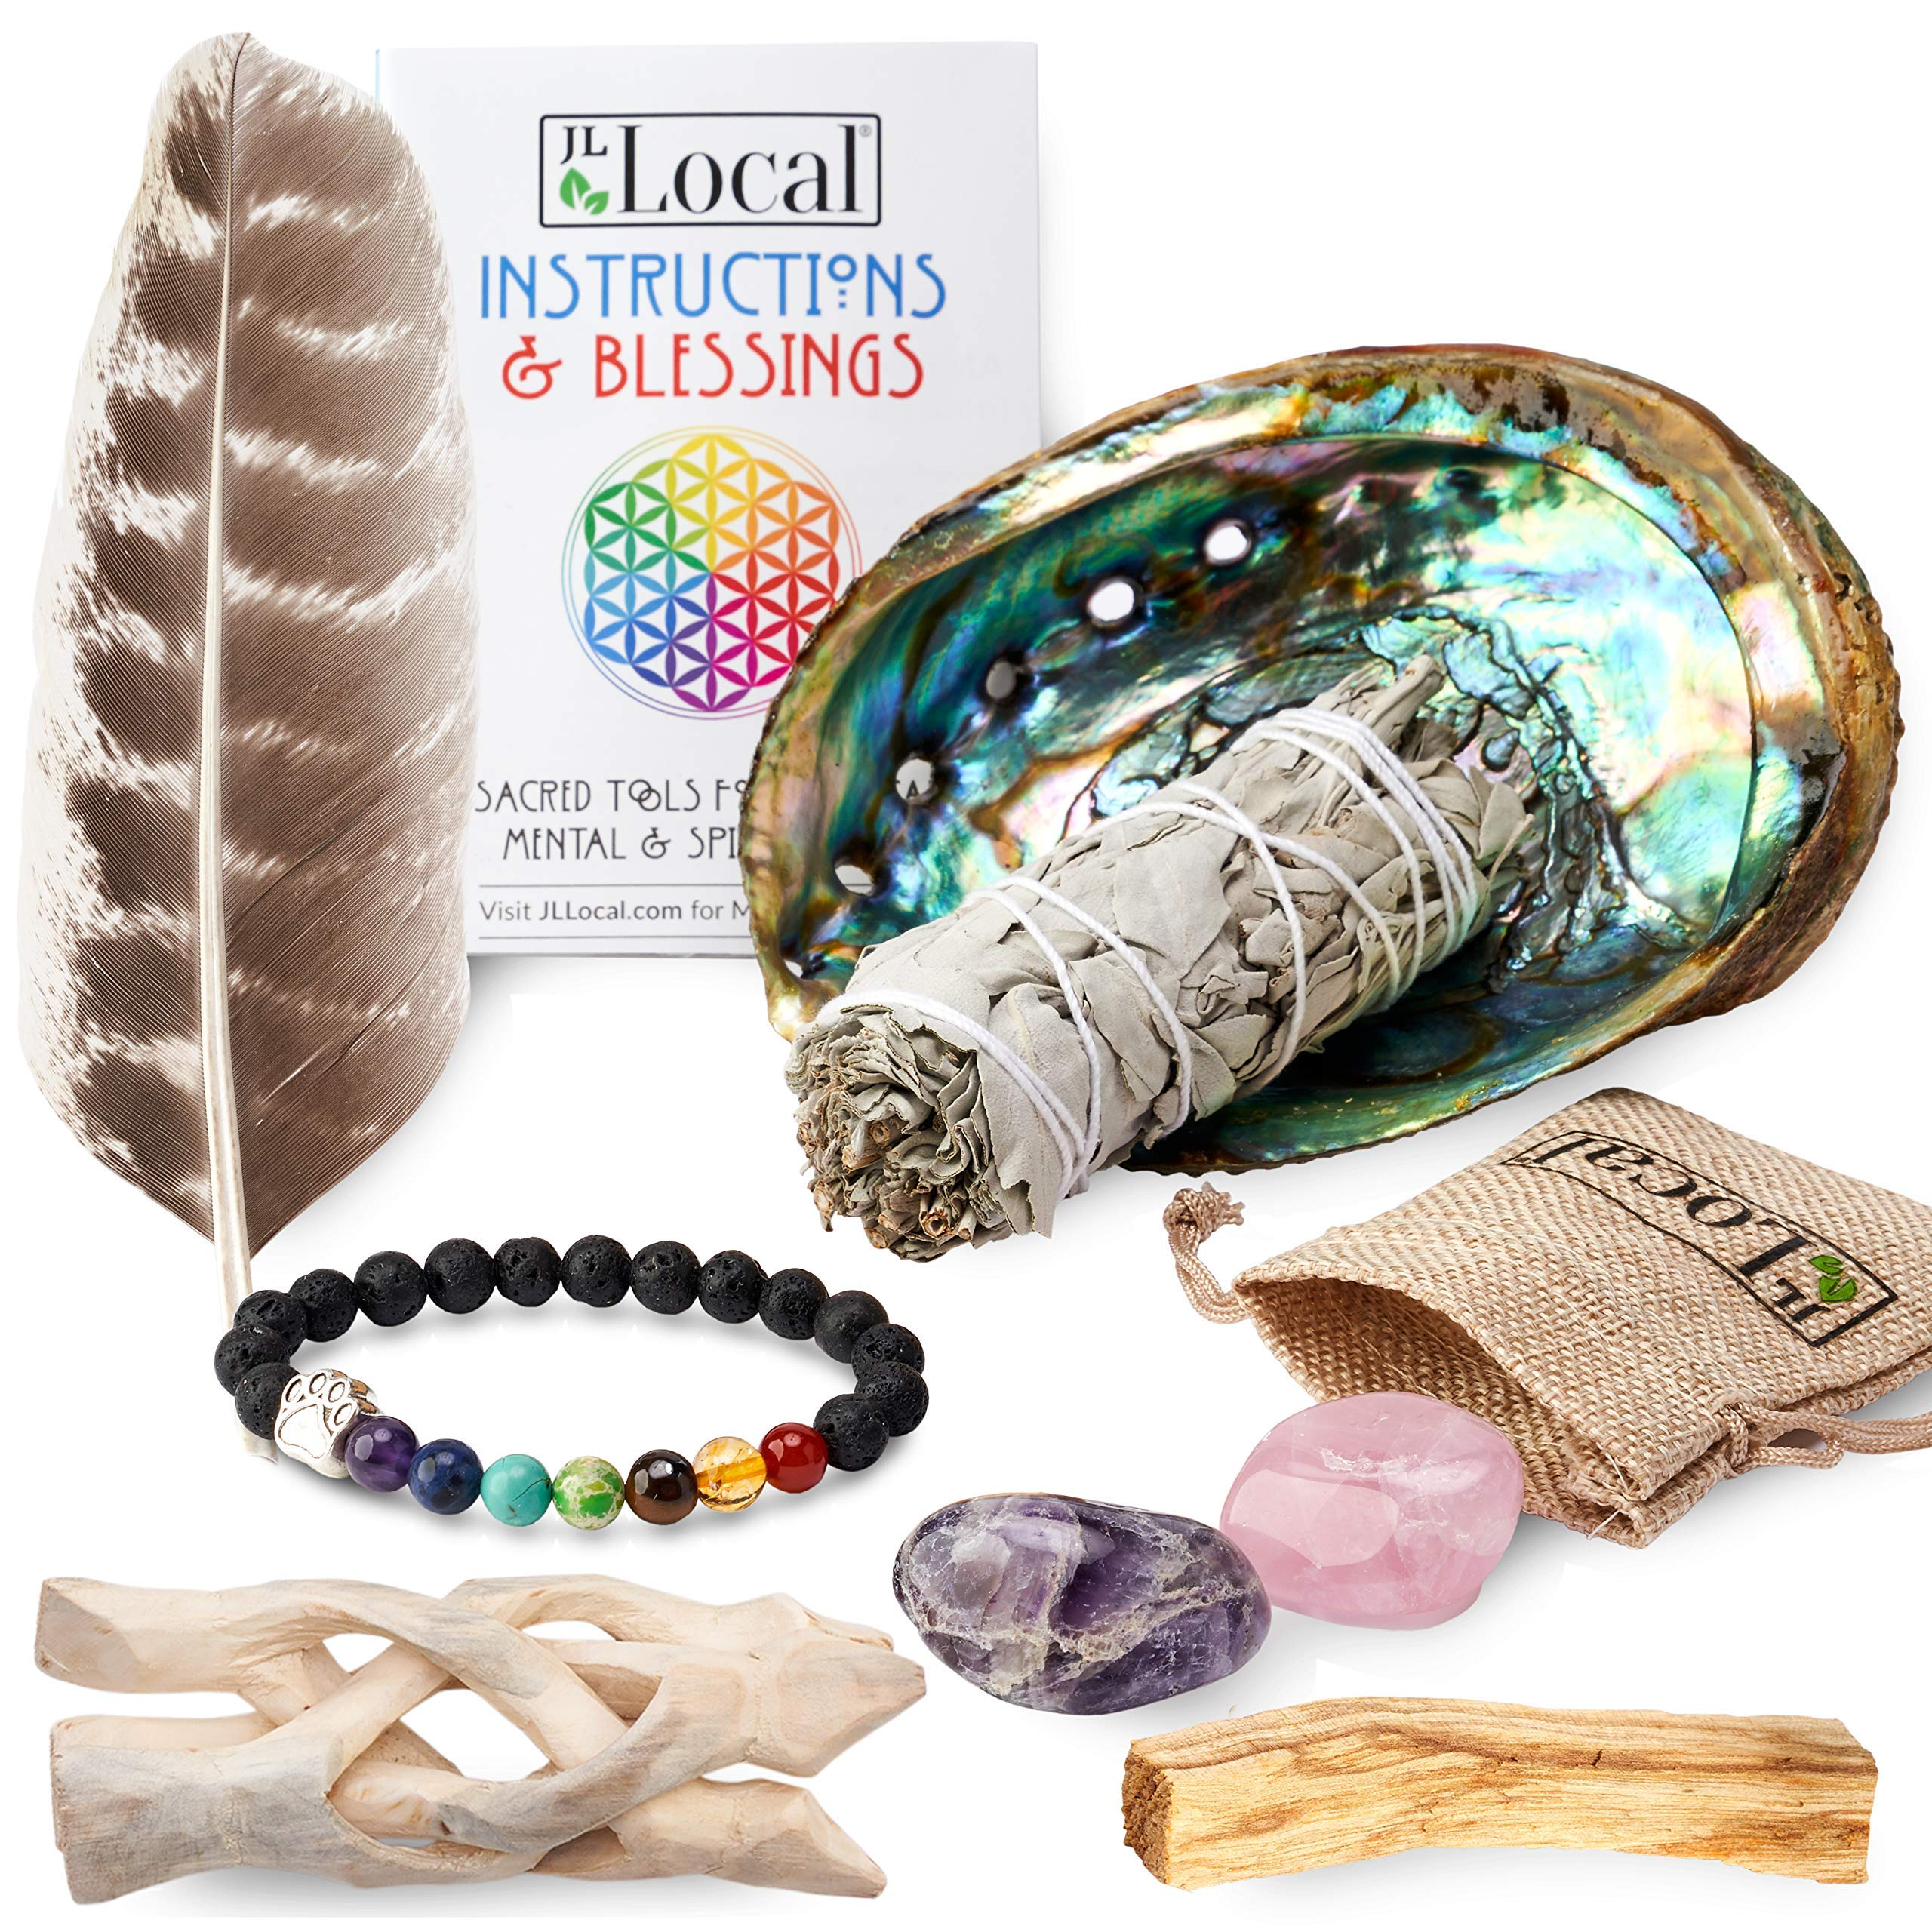 JL Local Chakra Smudging Kit - 10 Items Including White Sage Smudge Sticks, Palo Santo, Amethyst, Rose Quartz, Abalone Shell, Stand & Gift by JL Local (Image #4)